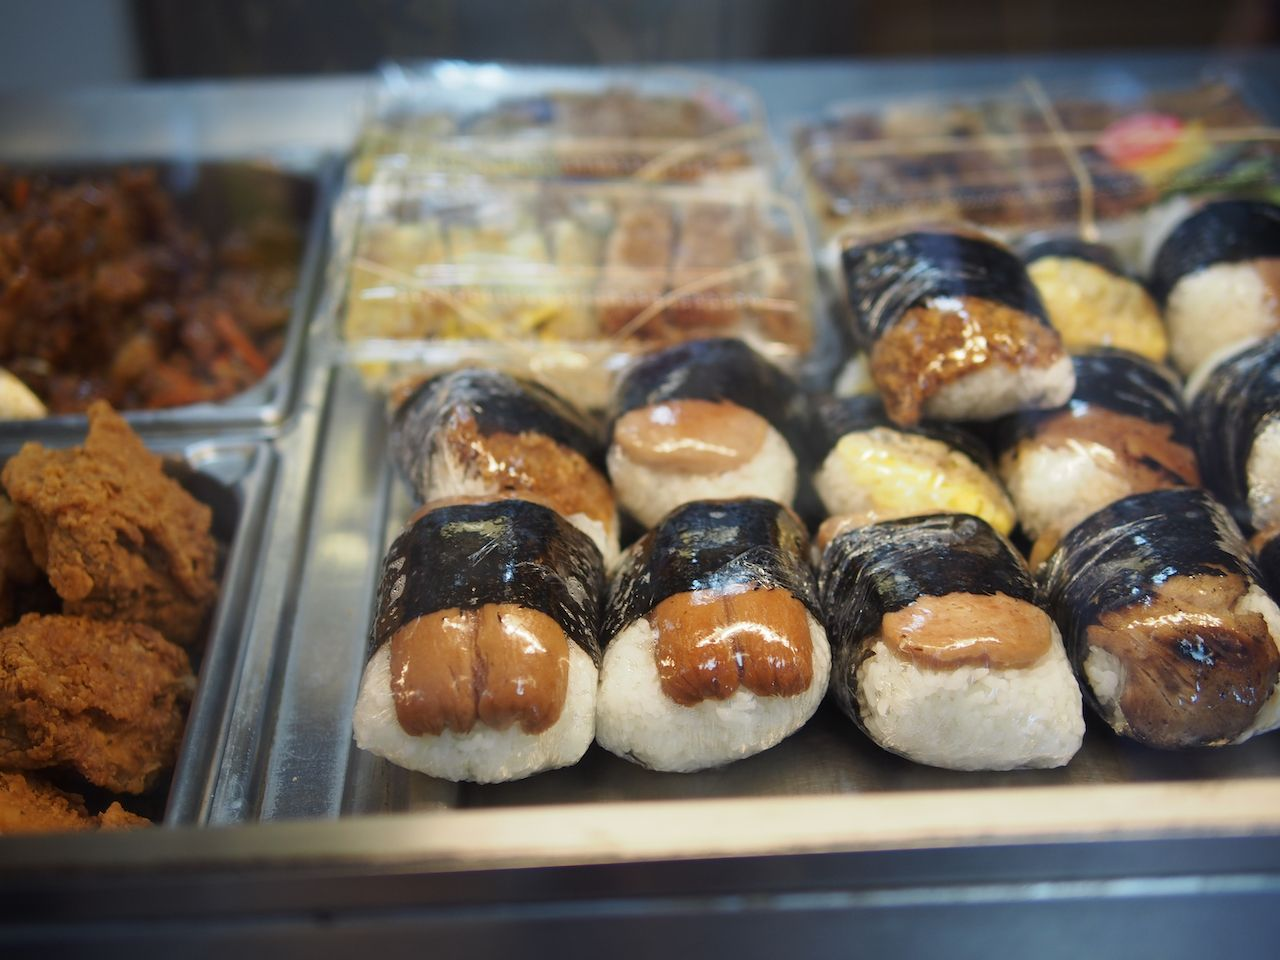 Display of musubi